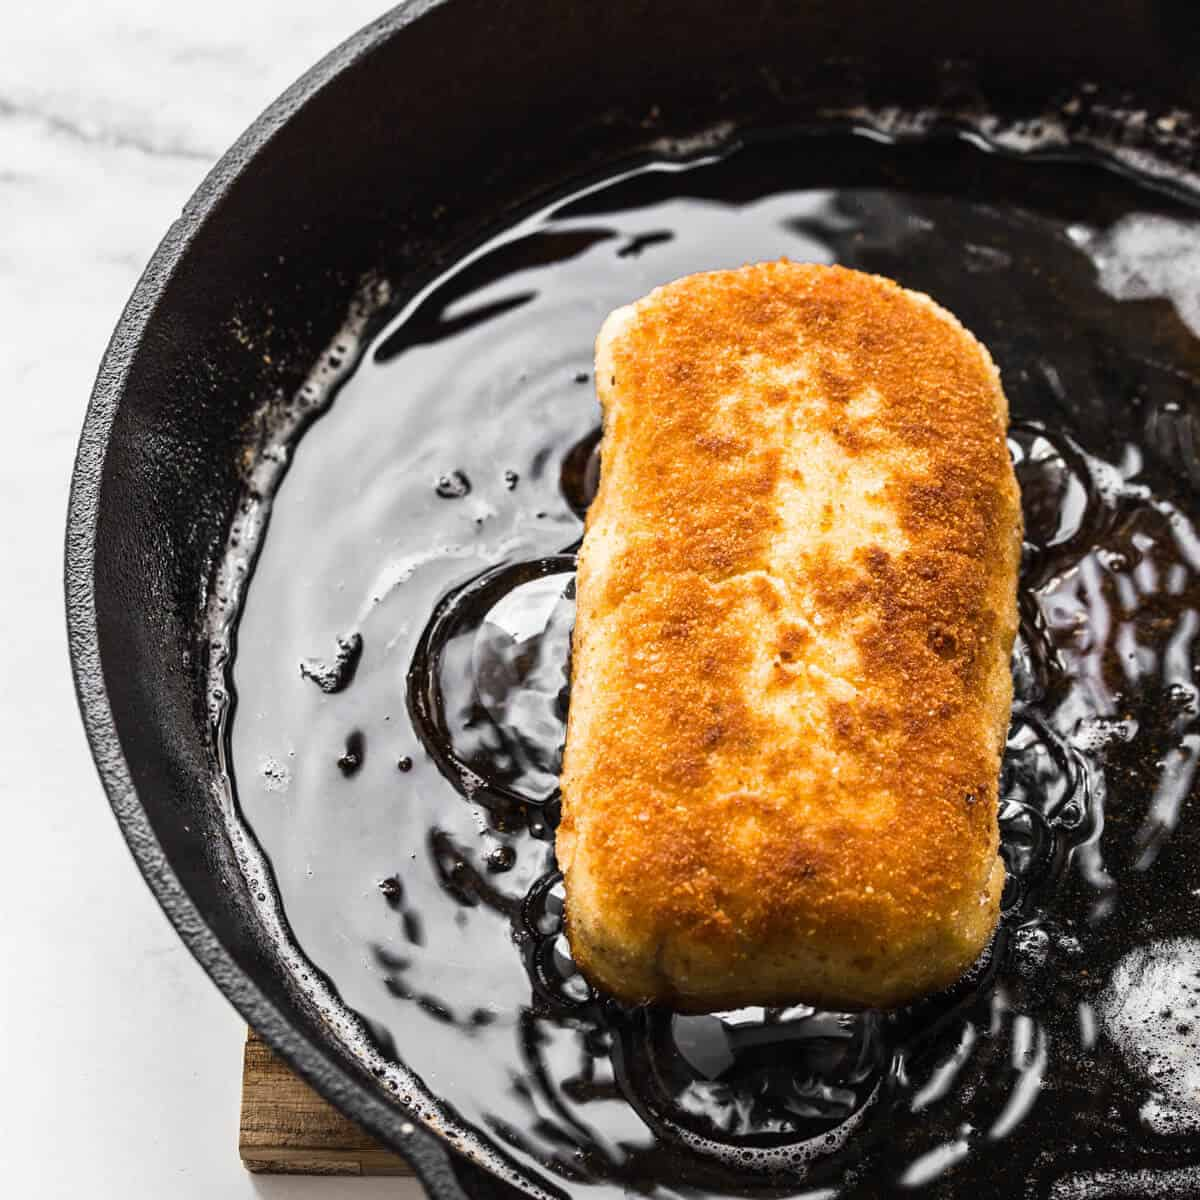 chicken kiev frying in oil in a black skillet